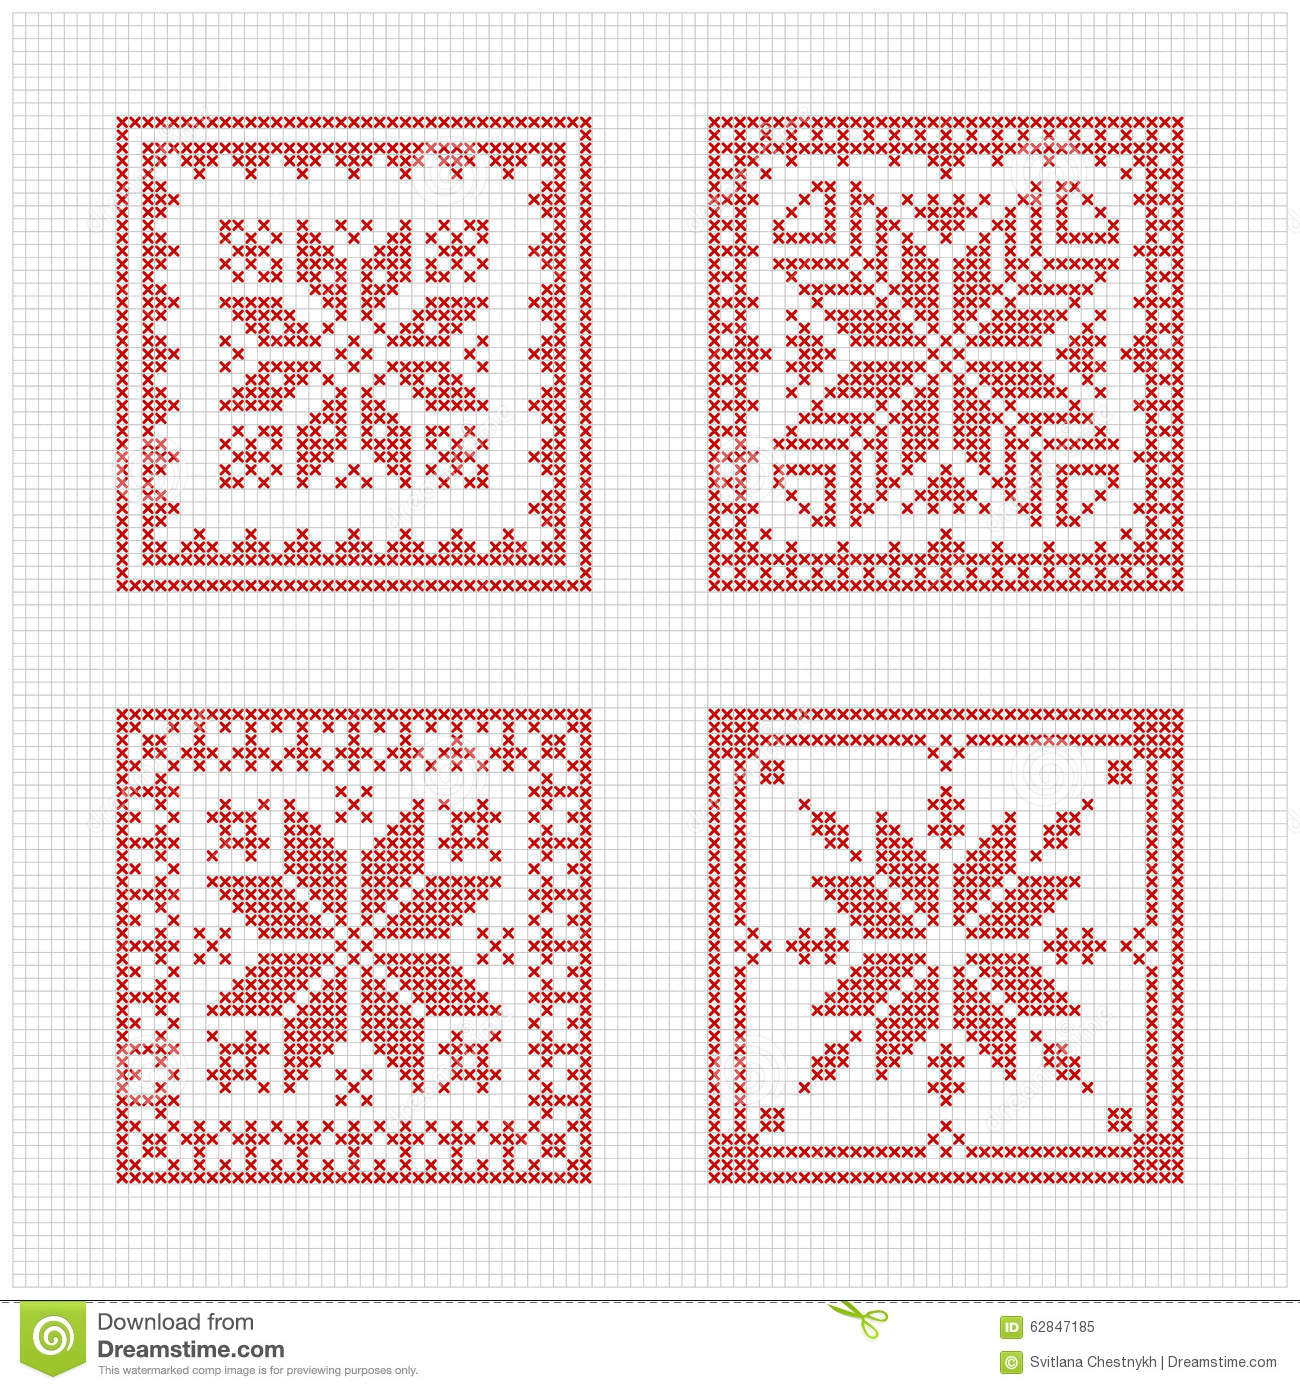 Free Christmas Cross Stitch Patterns To Print Simple Decoration